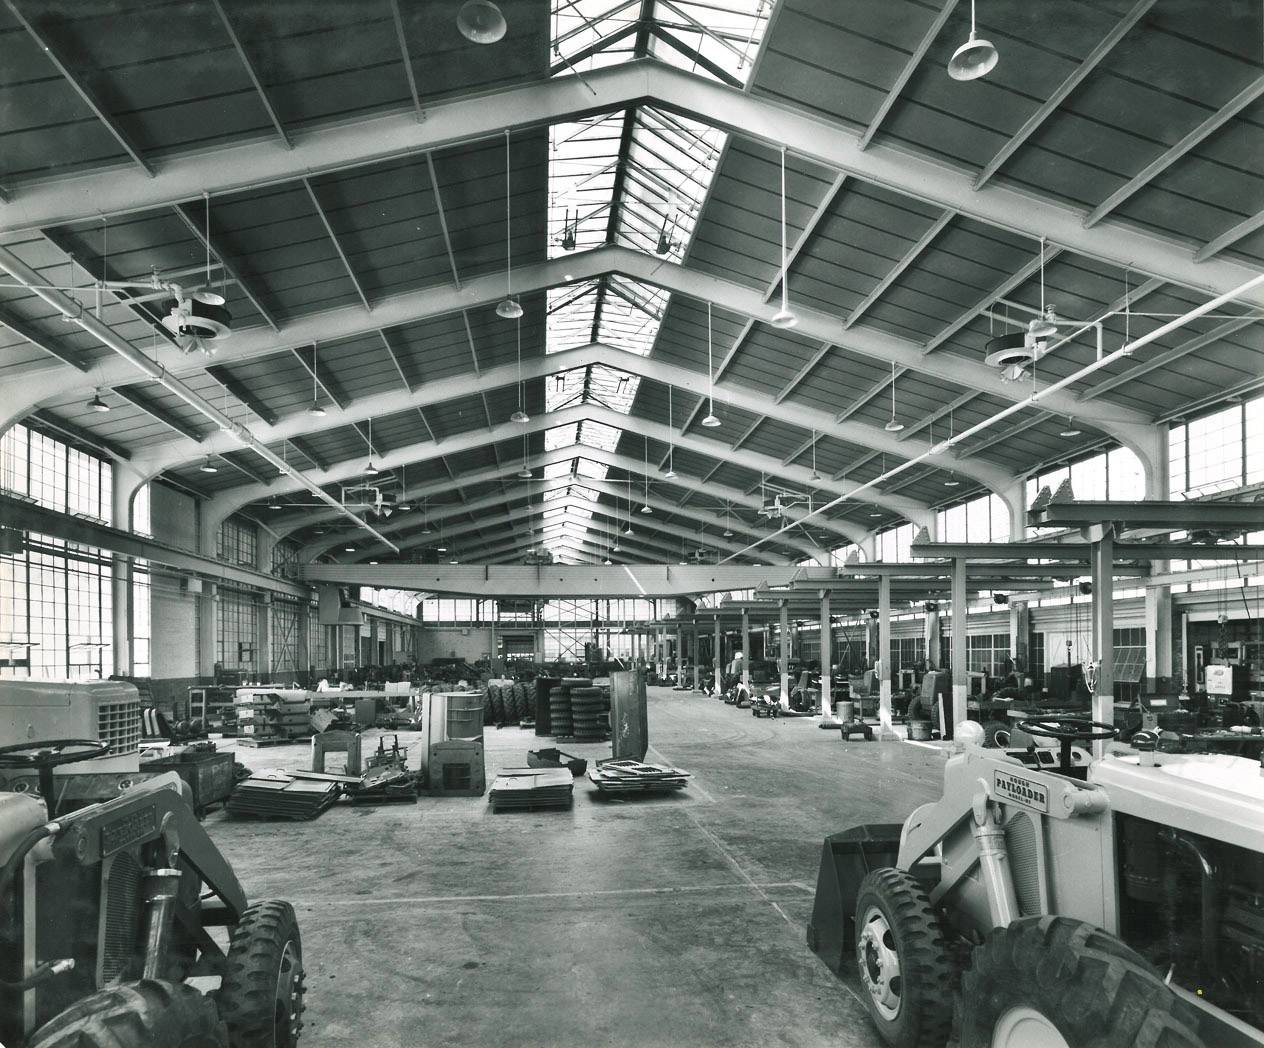 The assembly department at Frank G. Hough Co. is shown in this historic photo by Carl Ullrich.